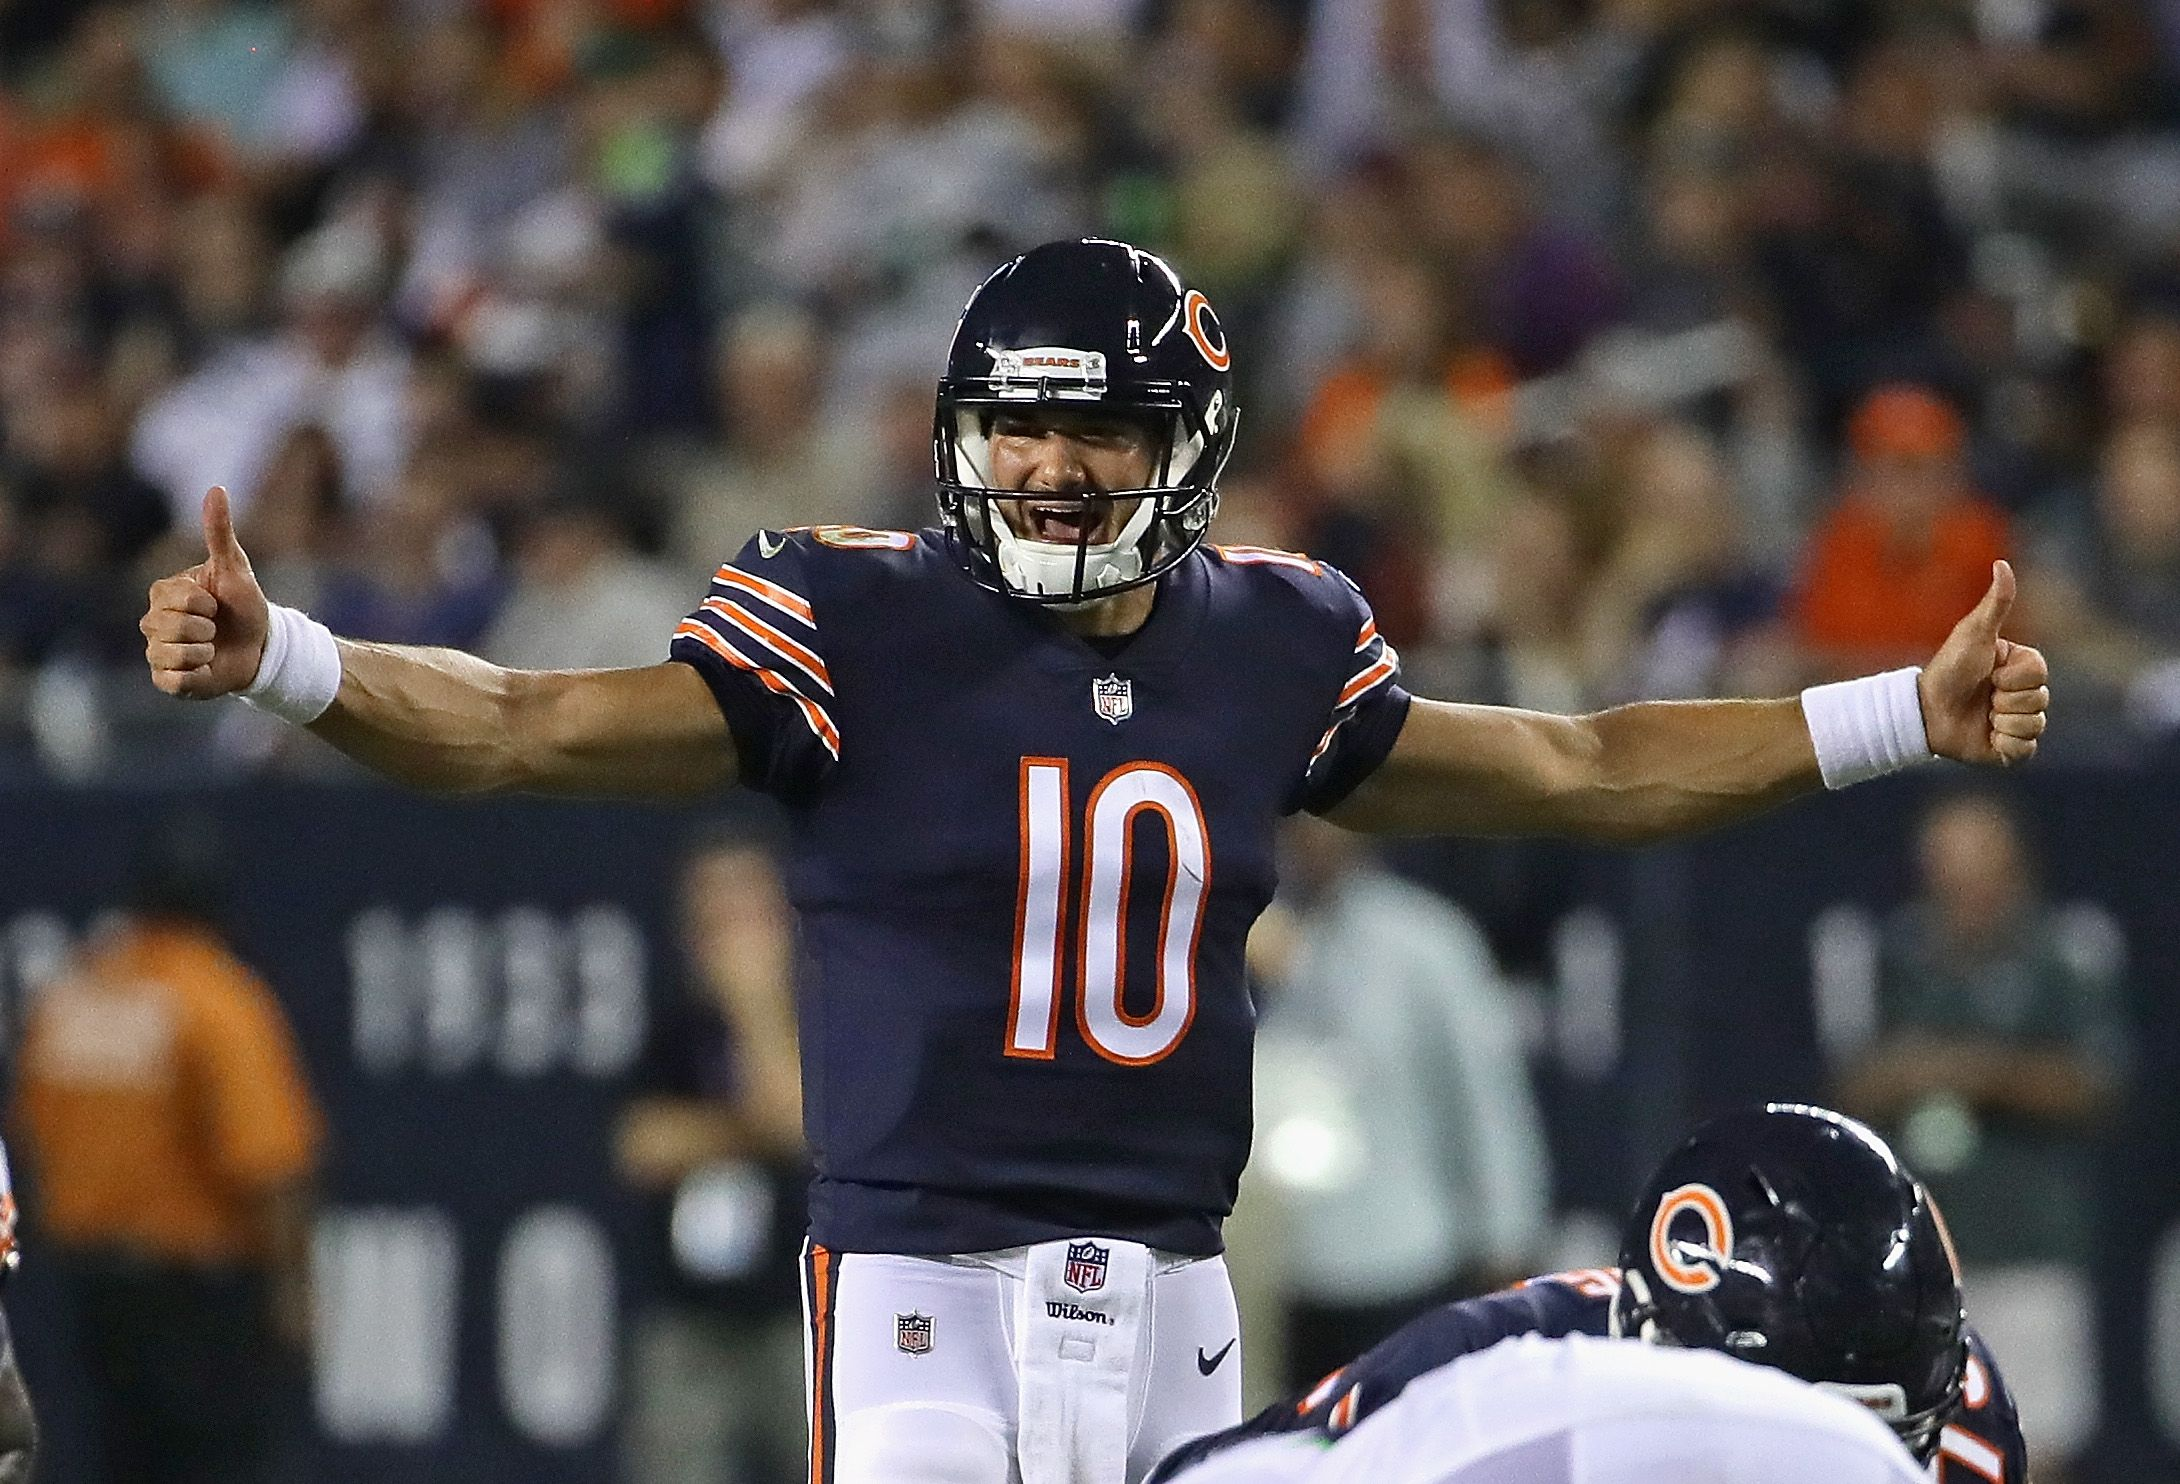 seattle seahawks vs chicago bears 2018 score live updates how to